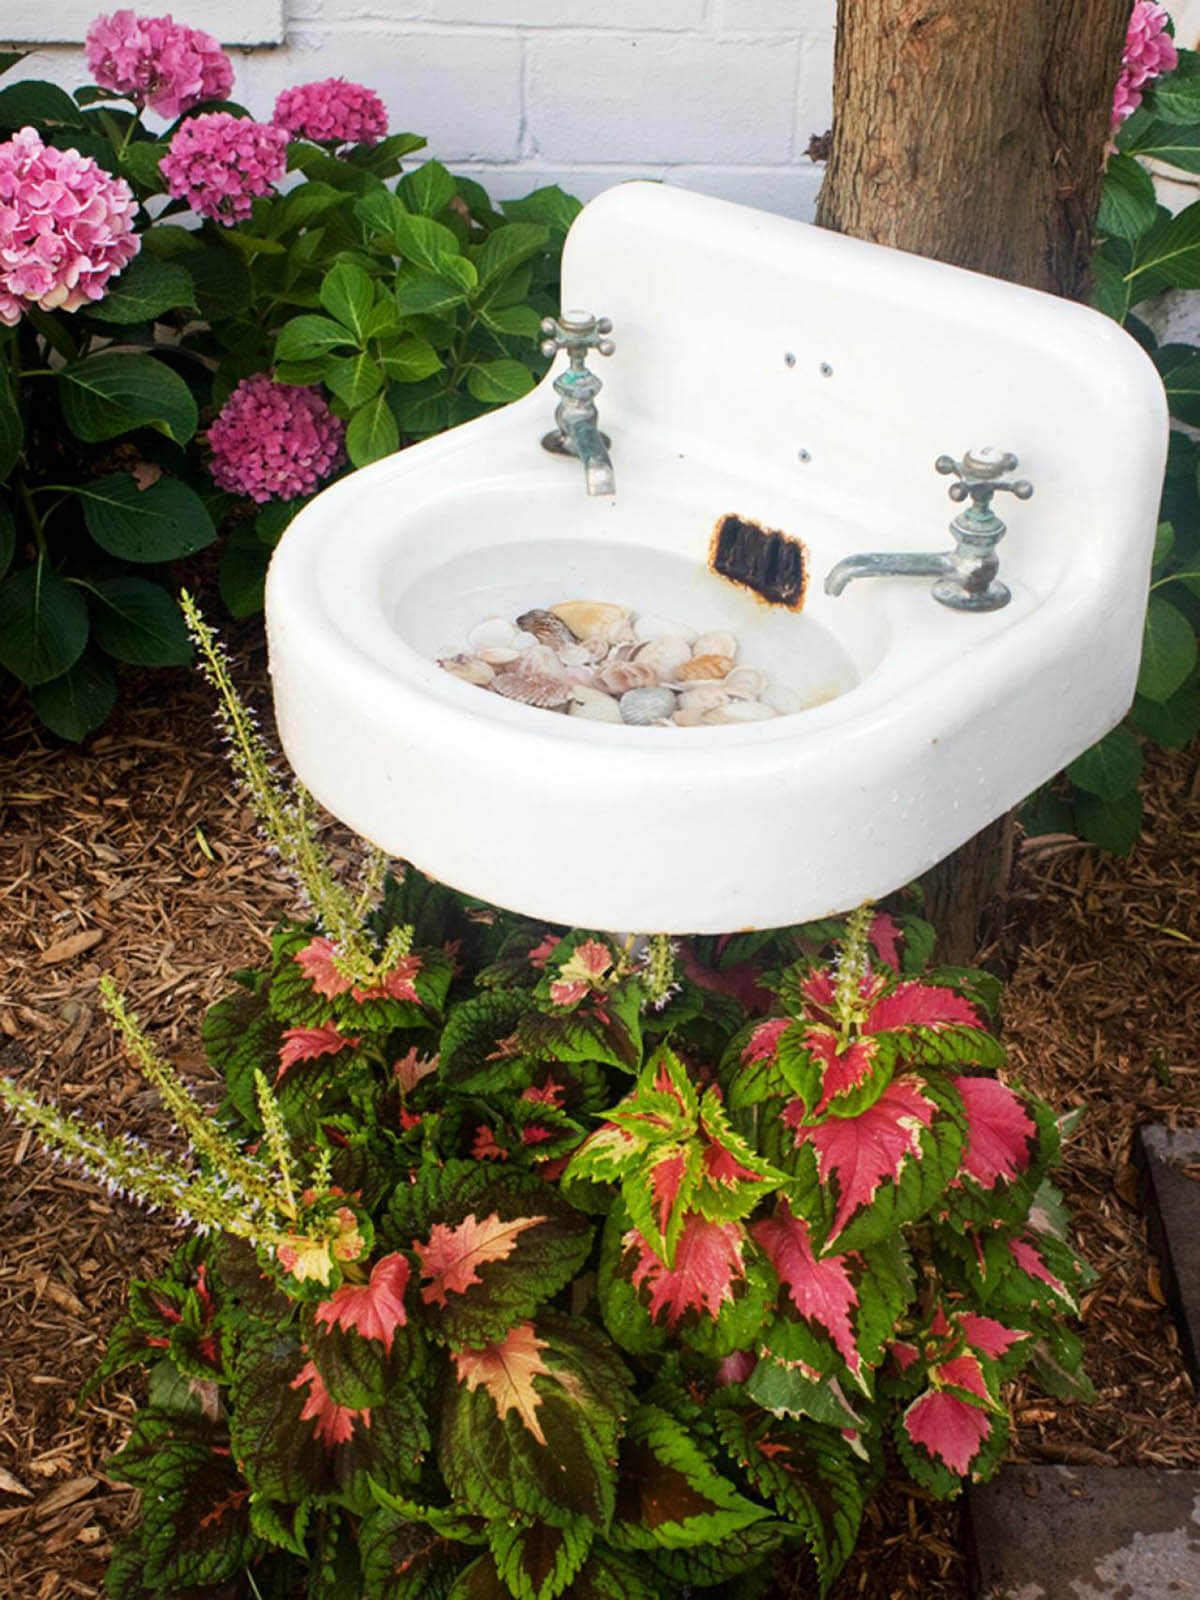 Recycled Bathroom Sink Bird Bath